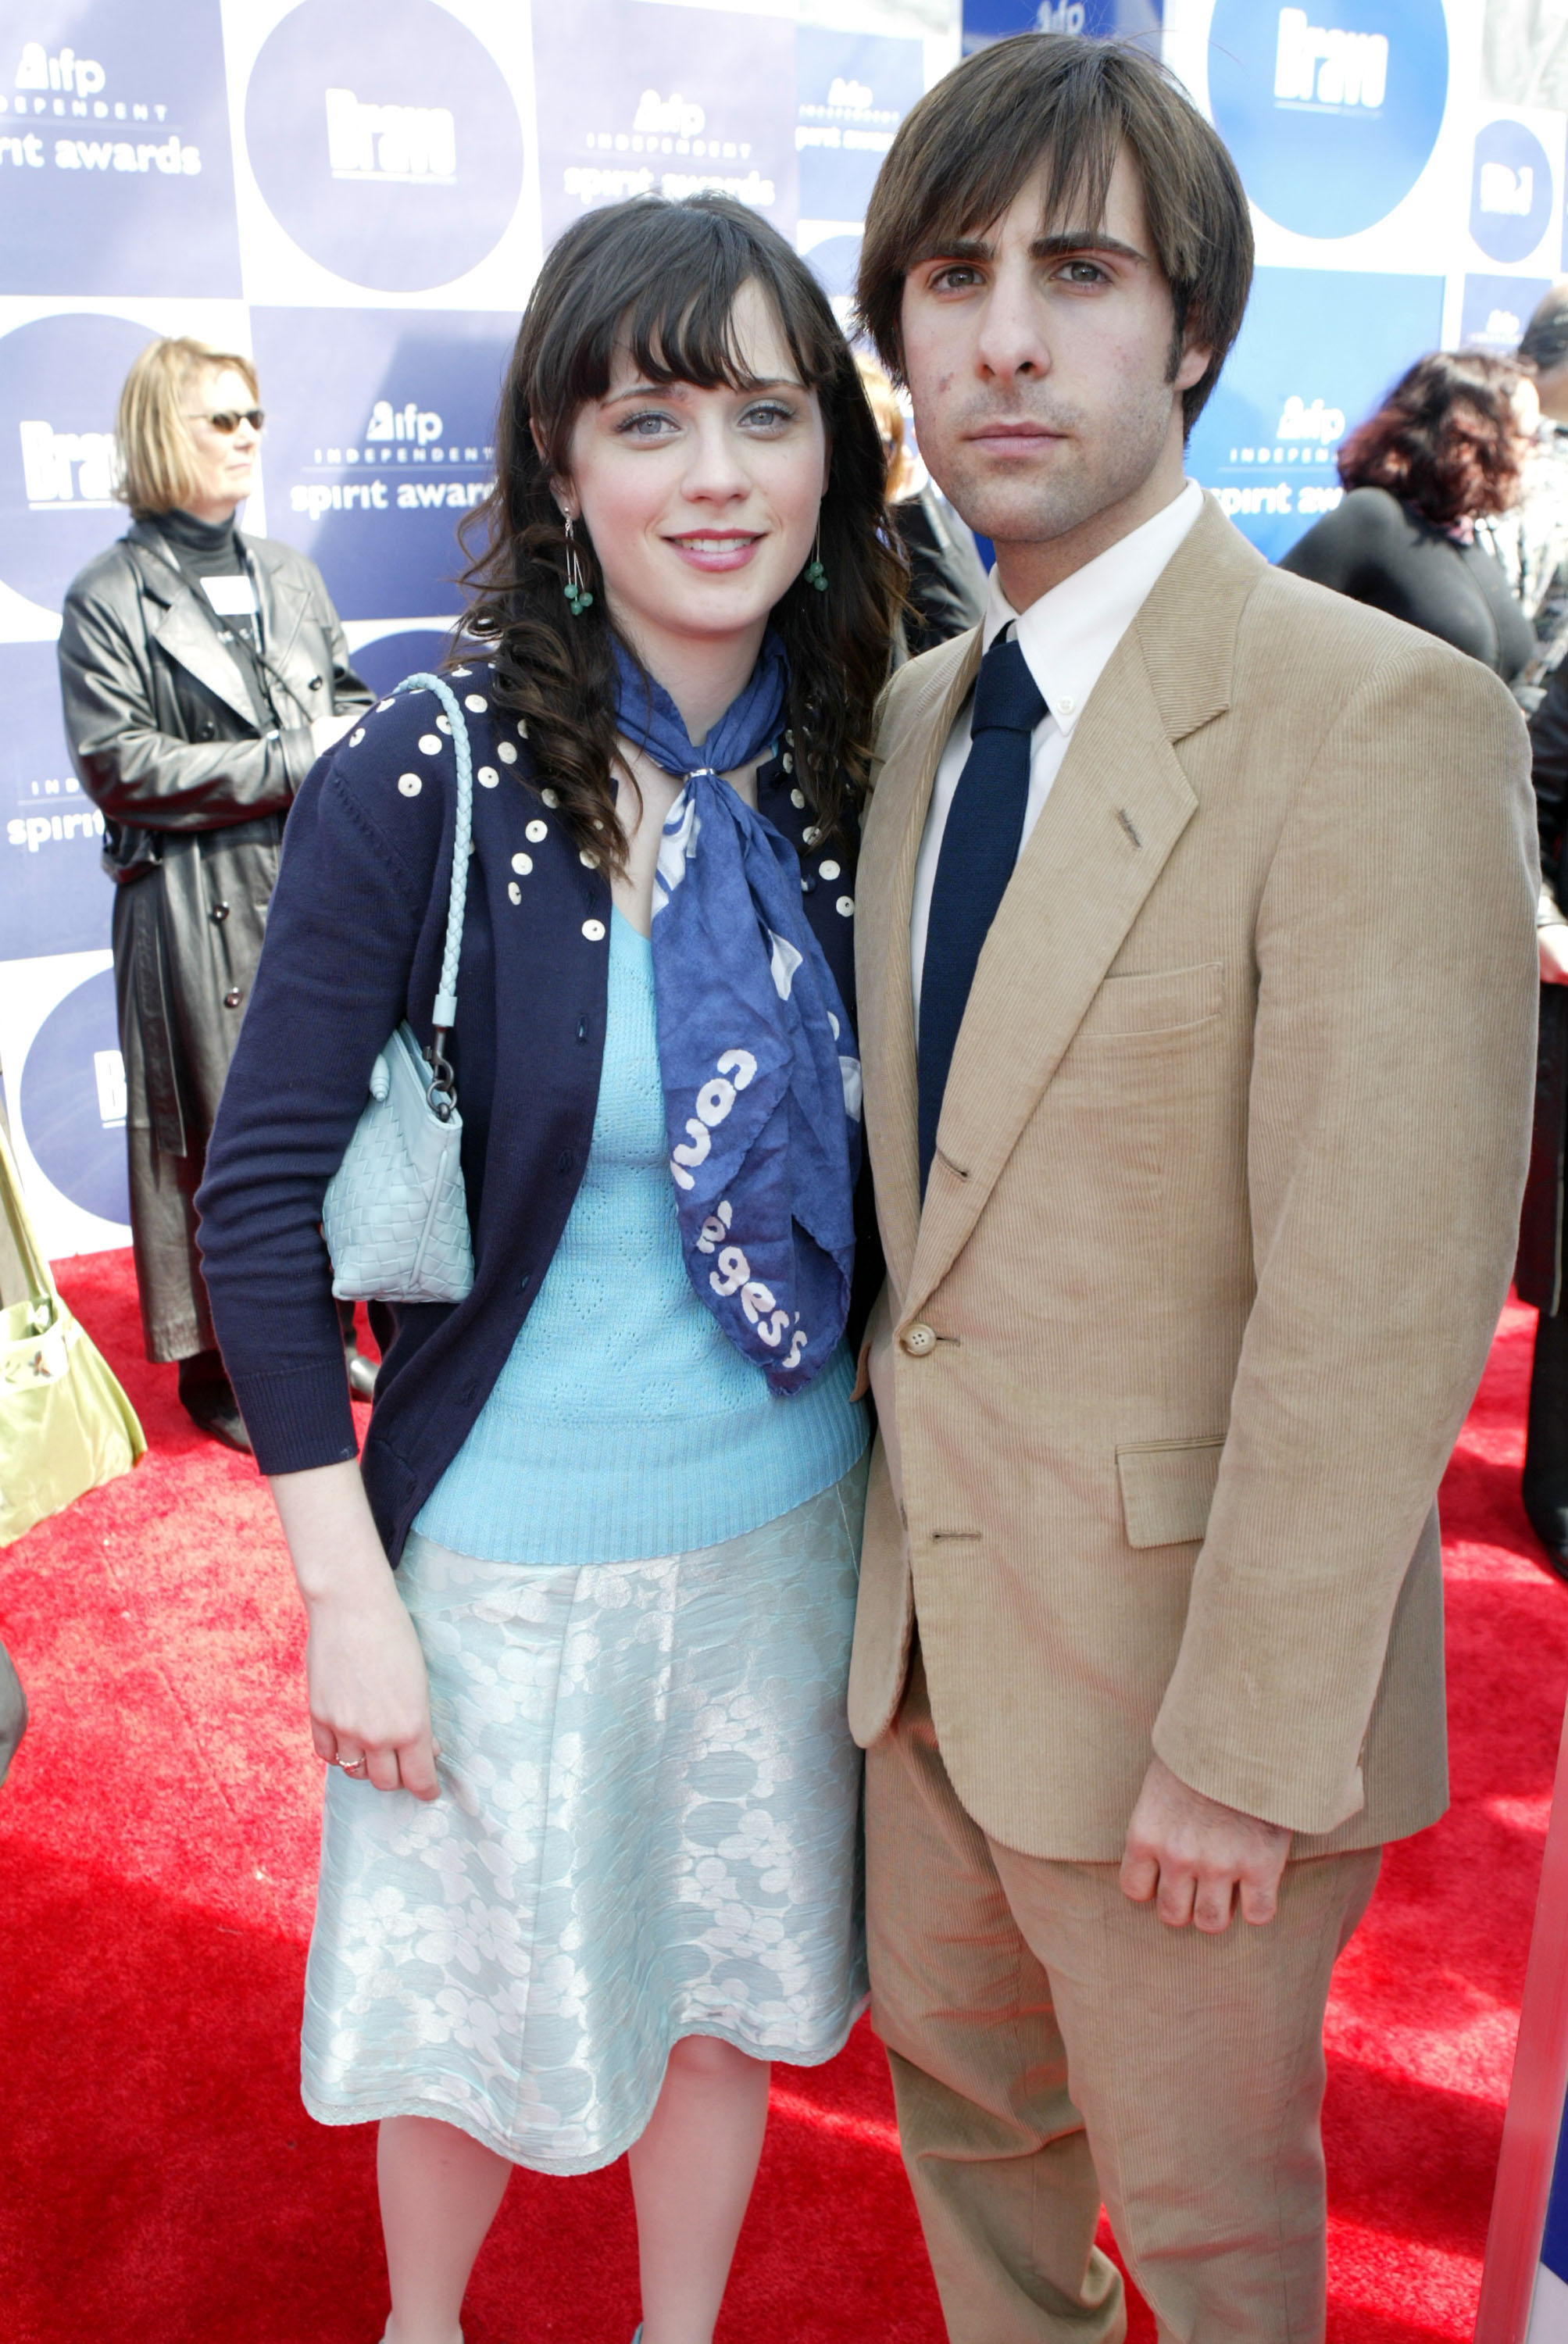 Zooey Deschanel and Jason Schwartzman dated between 2003 and 2005.